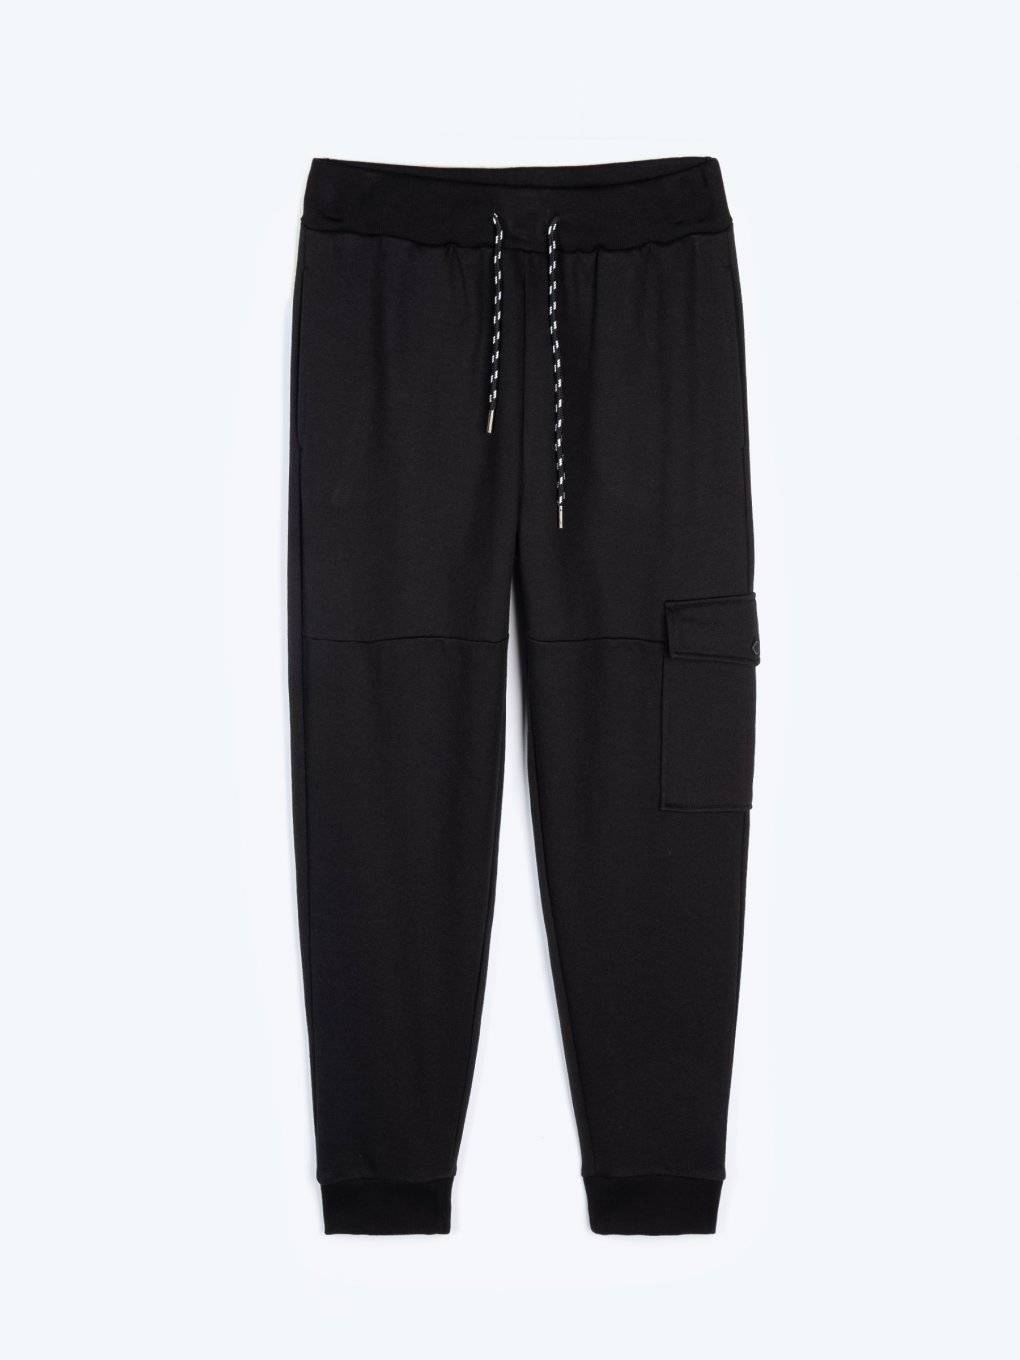 Sweatpants with side pocket